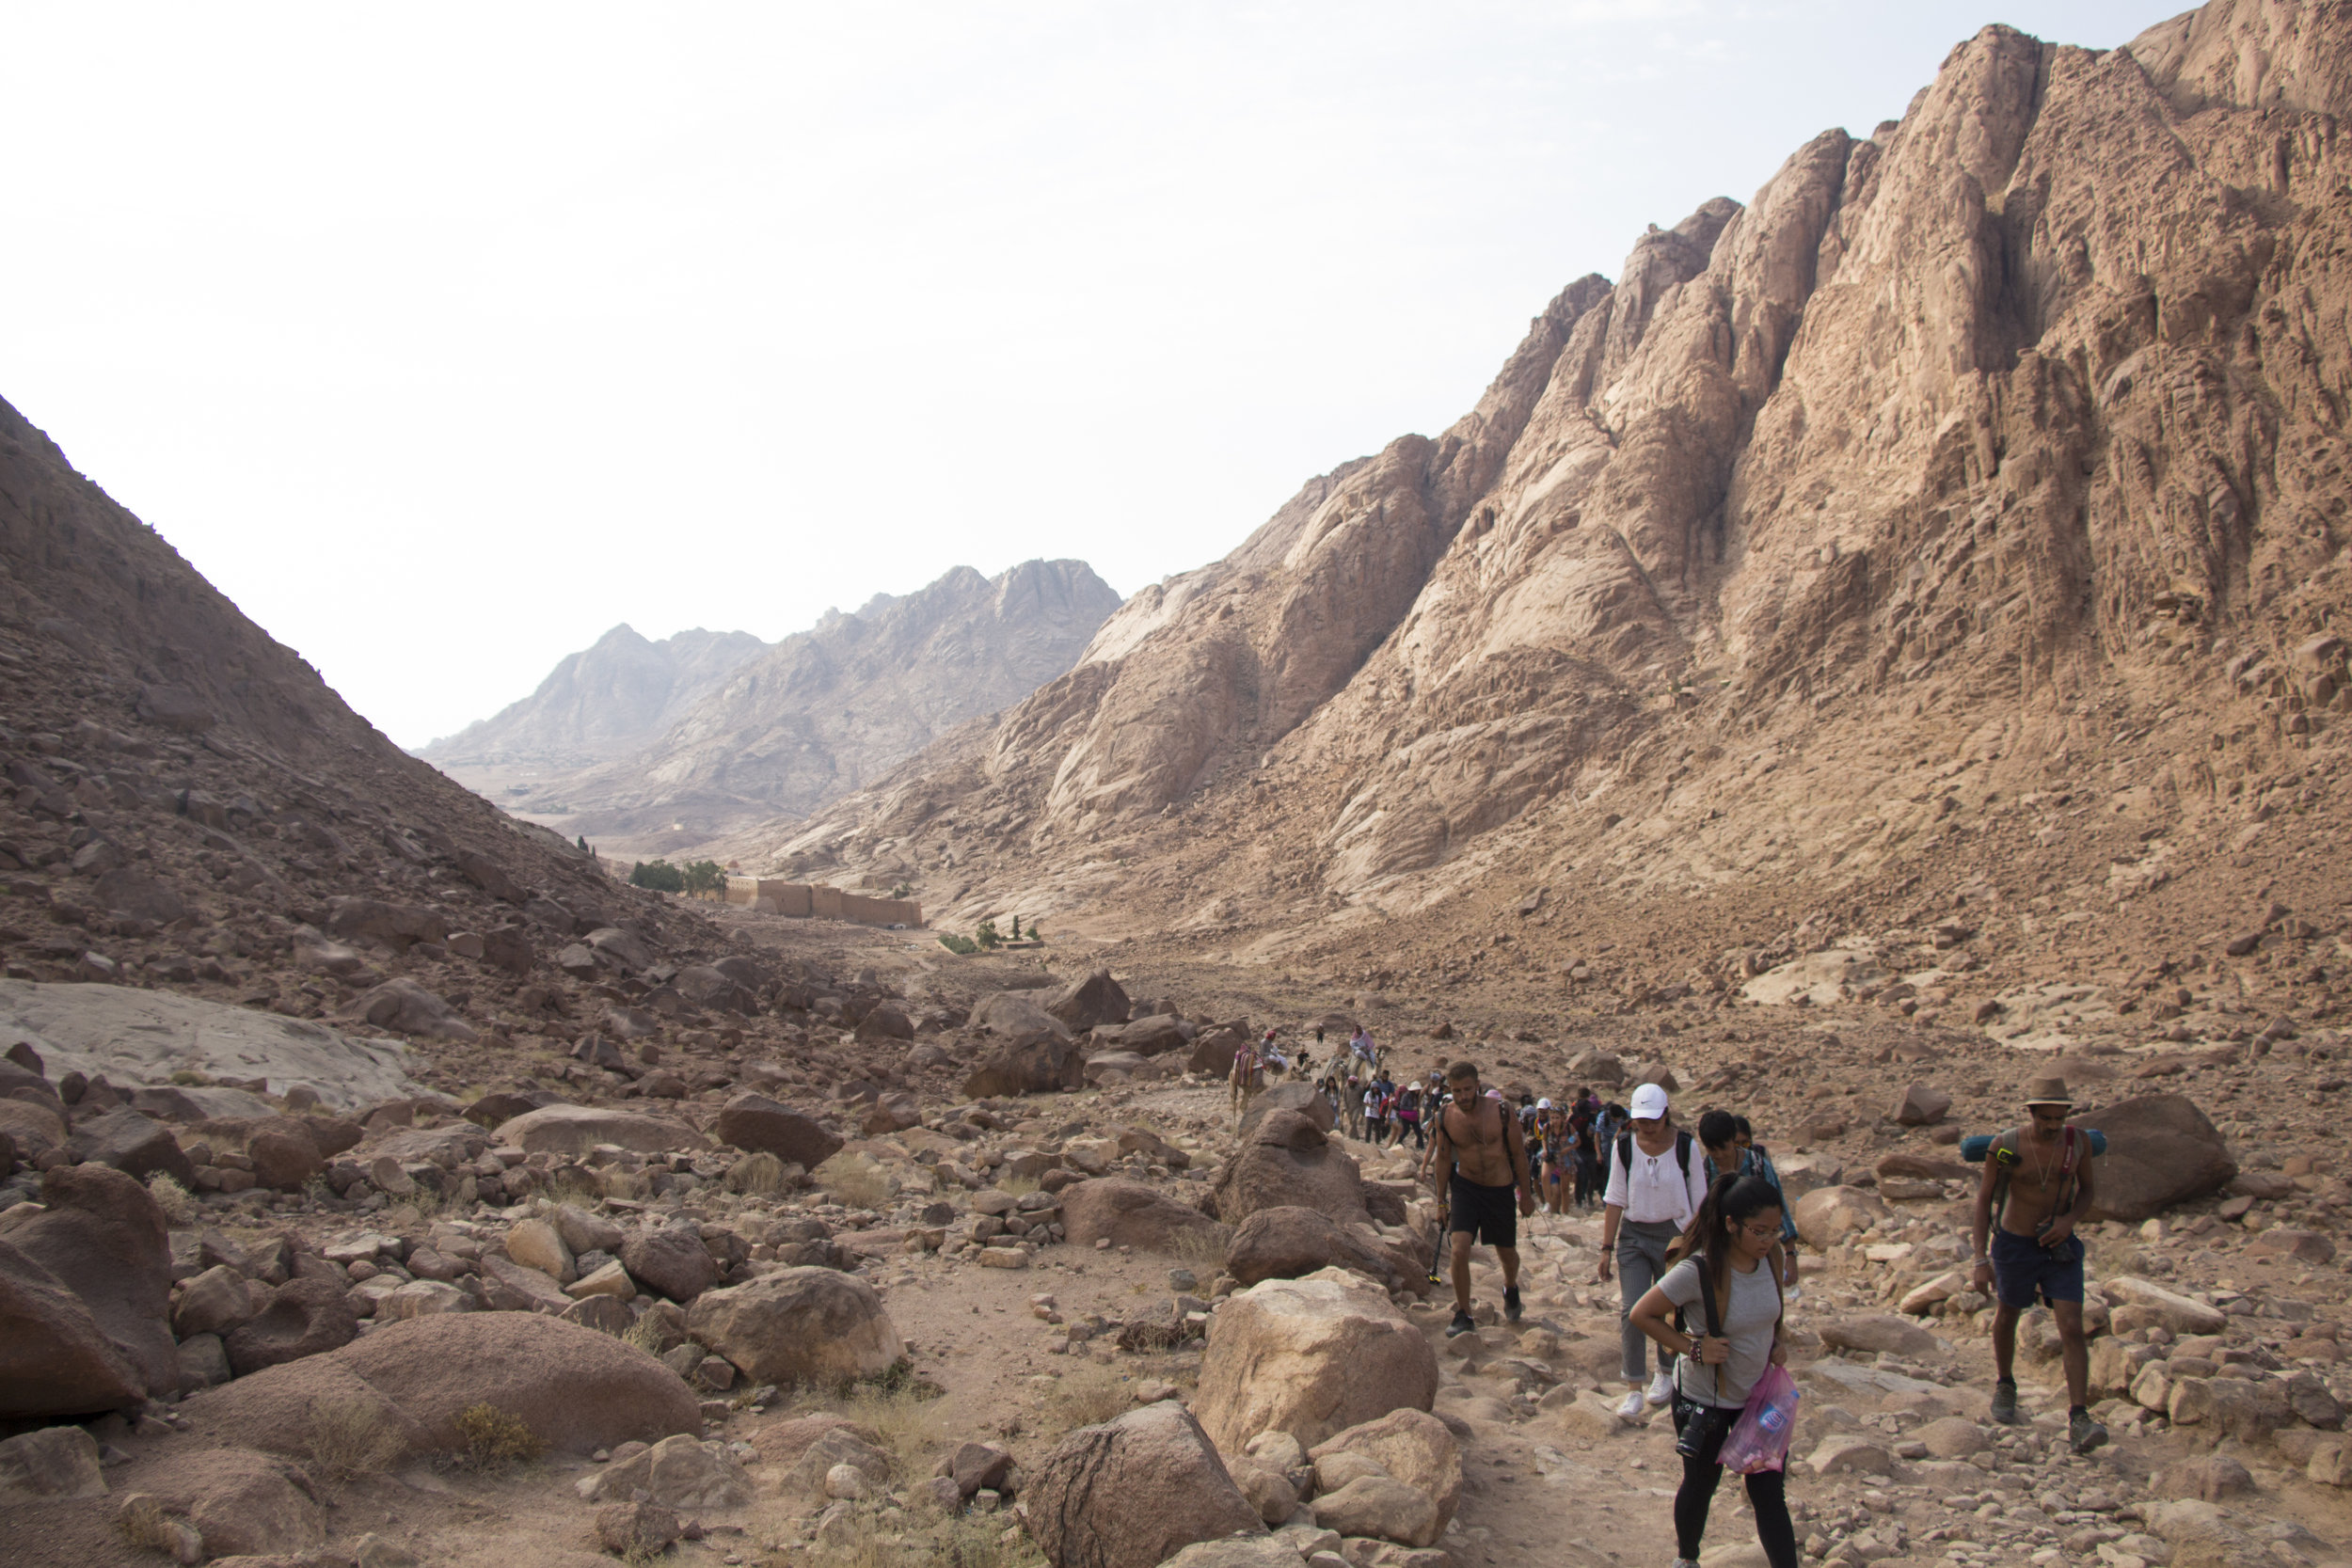 First stretch into Mount Sinai. 18th August 2017.